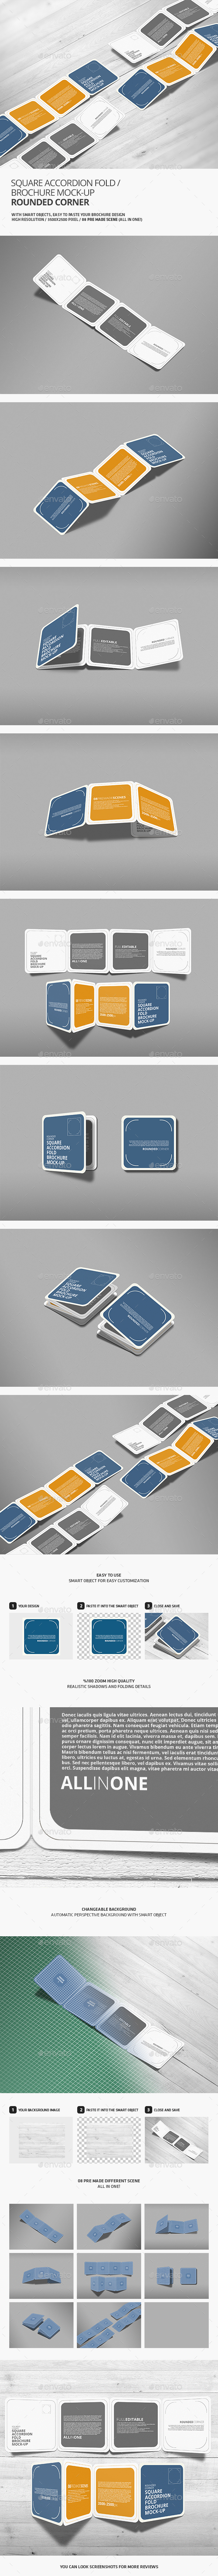 Square Accordion Fold Brochure Mock-Up - Rounded Corner - Product Mock-Ups Graphics